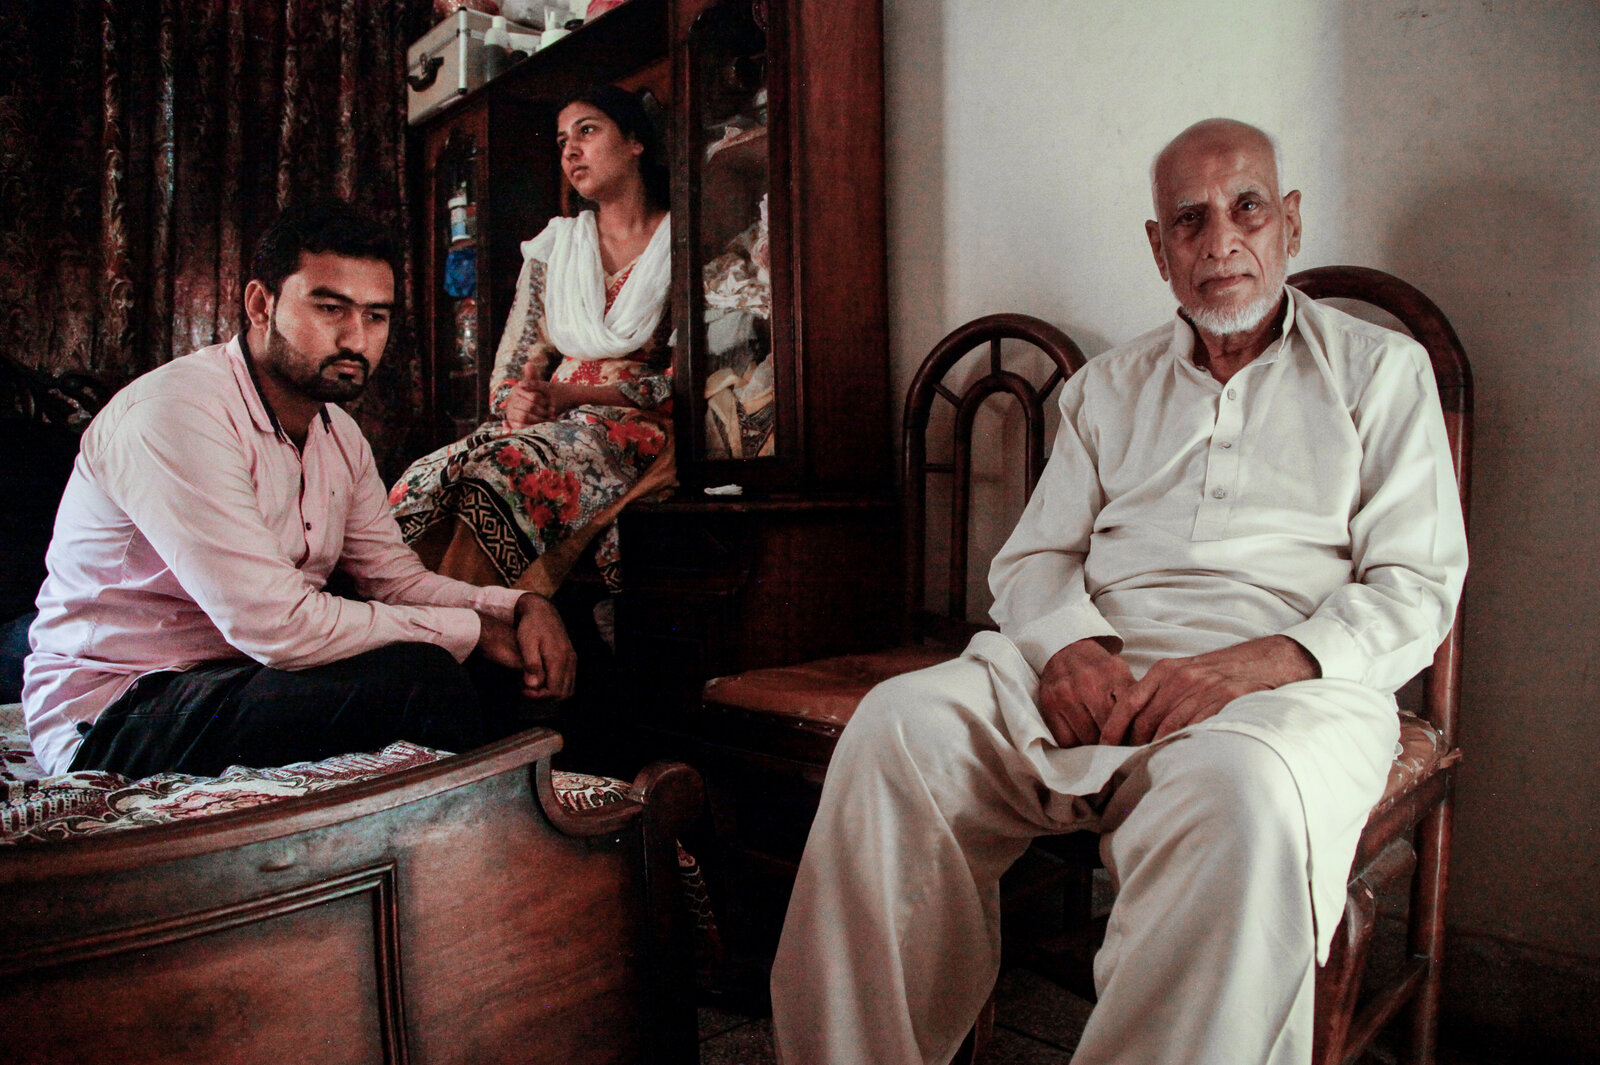 Home to have angered locals is a 30 000 square foot creation of hadid - As A Boy In 1947 Muhammad Hanif Qureshi Now 83 And Shown Here With His Great Niece And Great Nephew In Their Home In Lahore Fled Amritsar